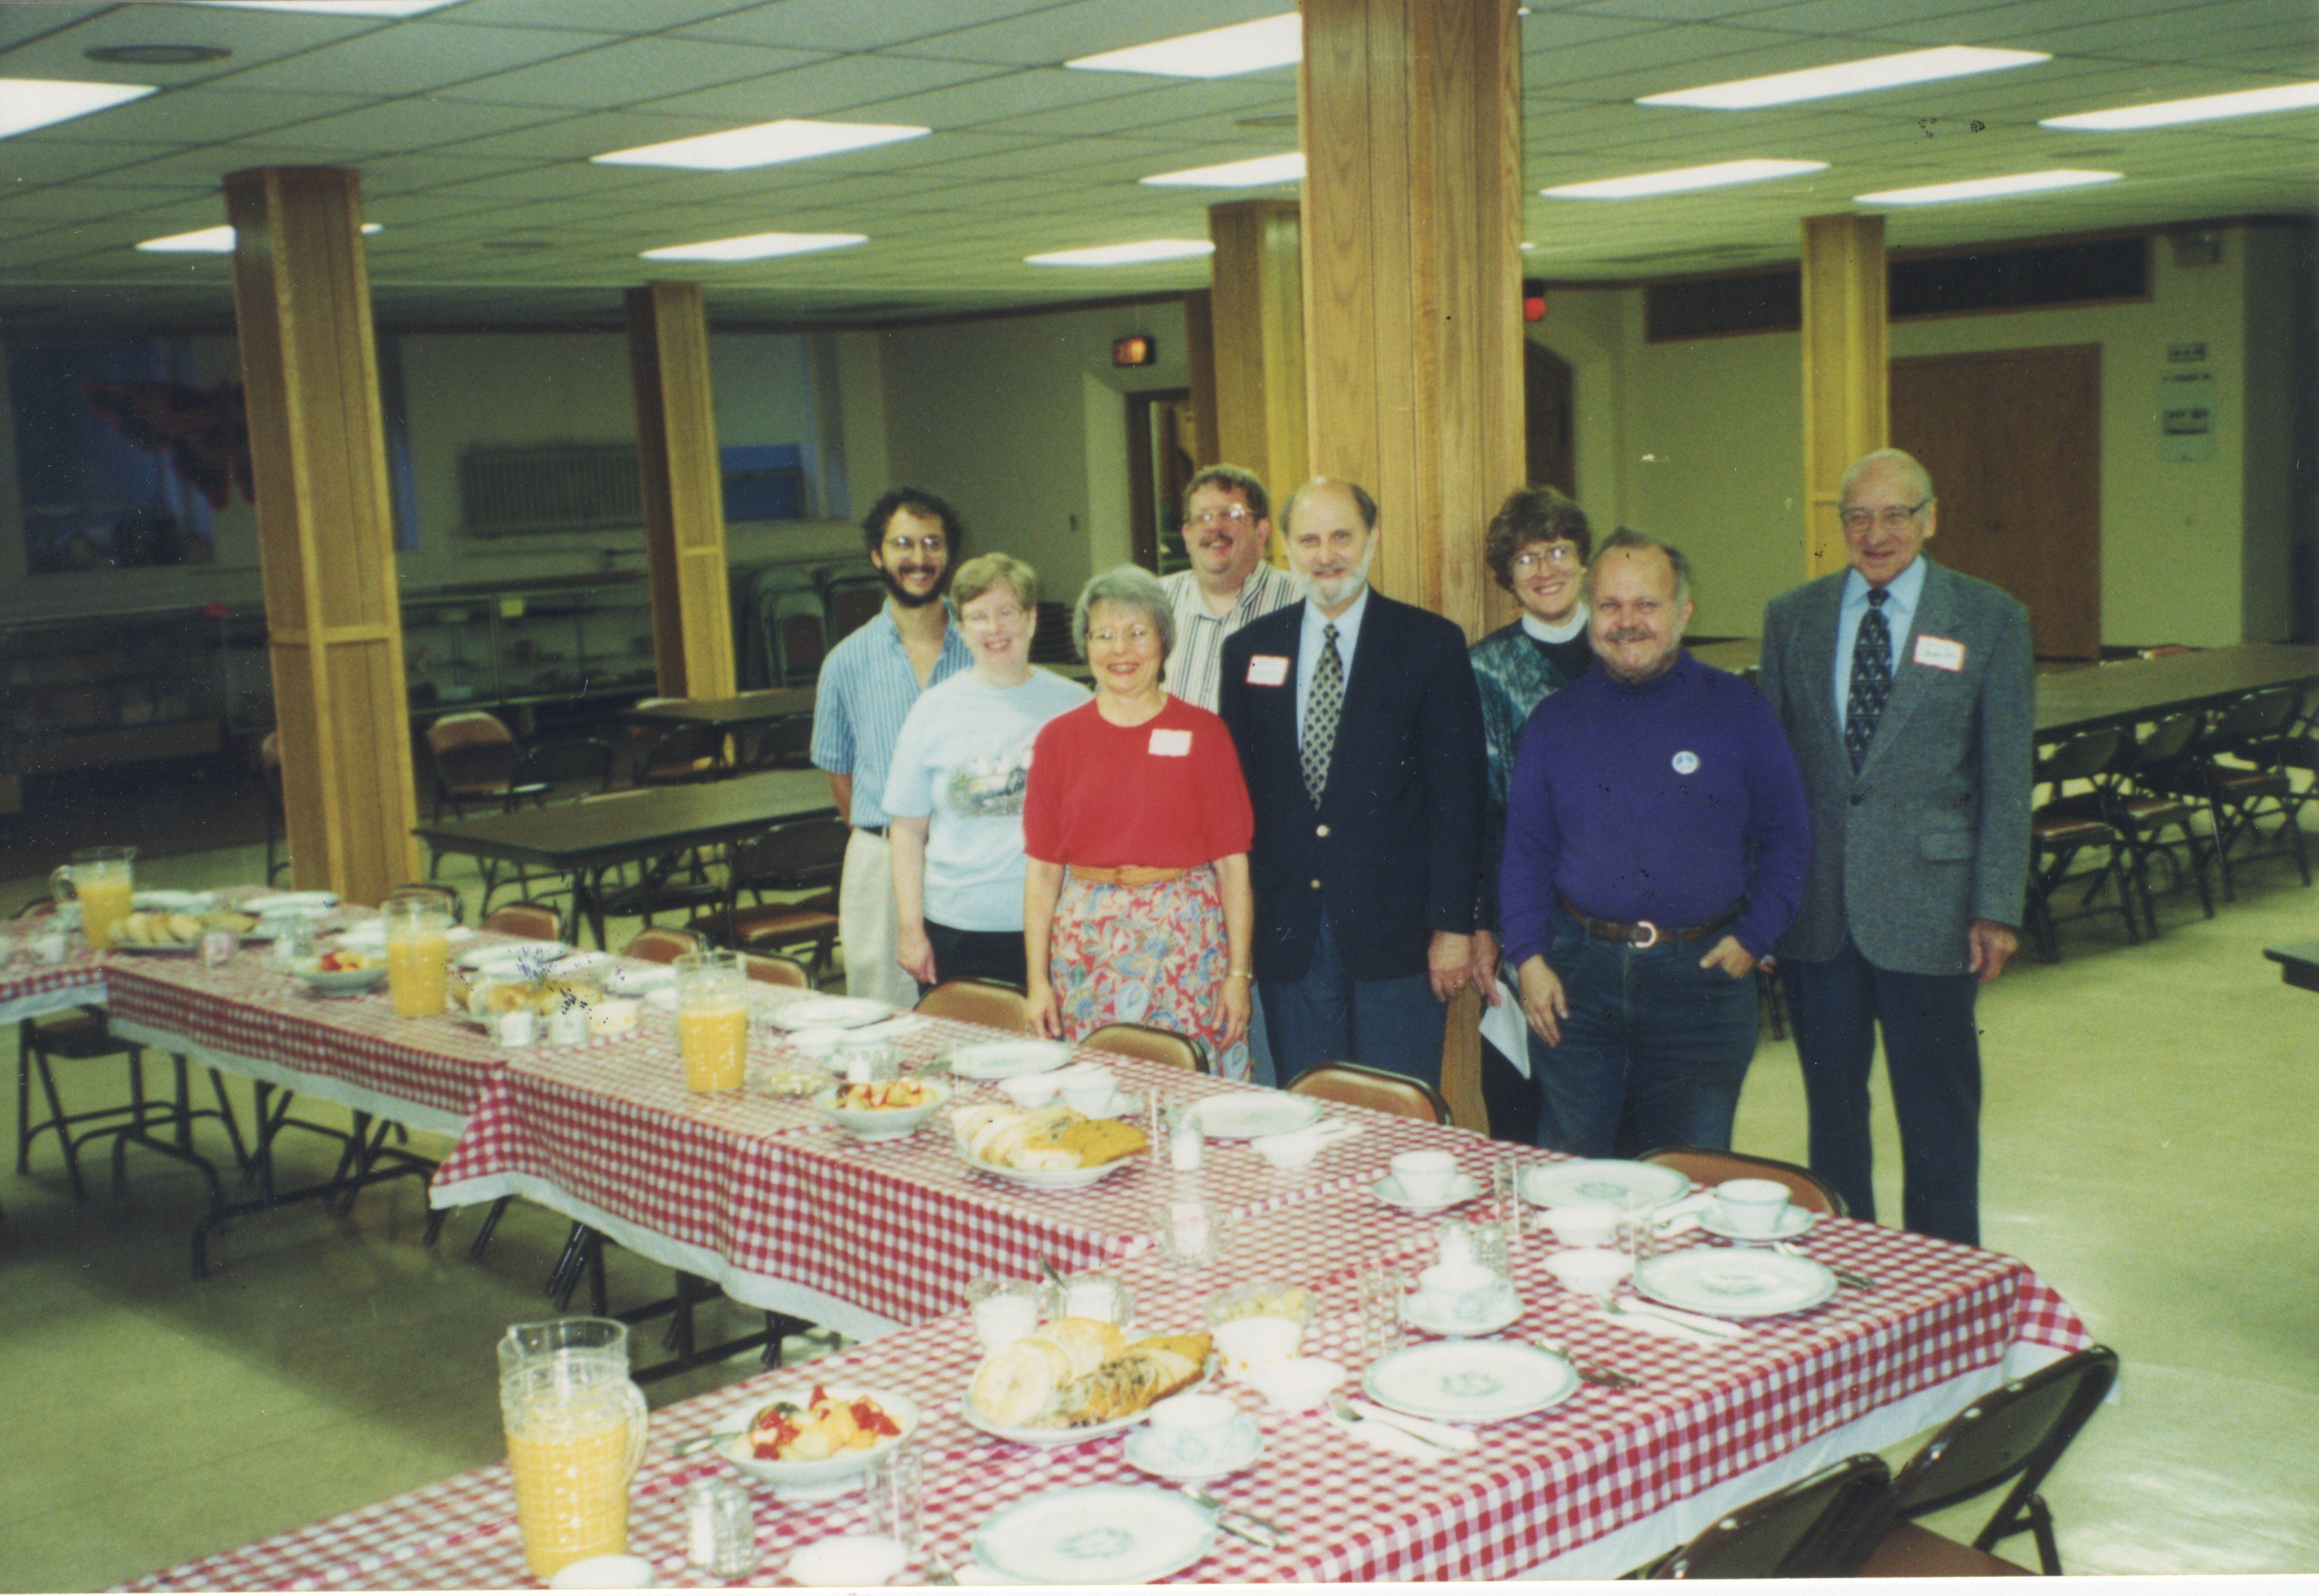 Interfaith Council for Peace and Justice: Group Photo at Clergy Breakfast, 1999 image